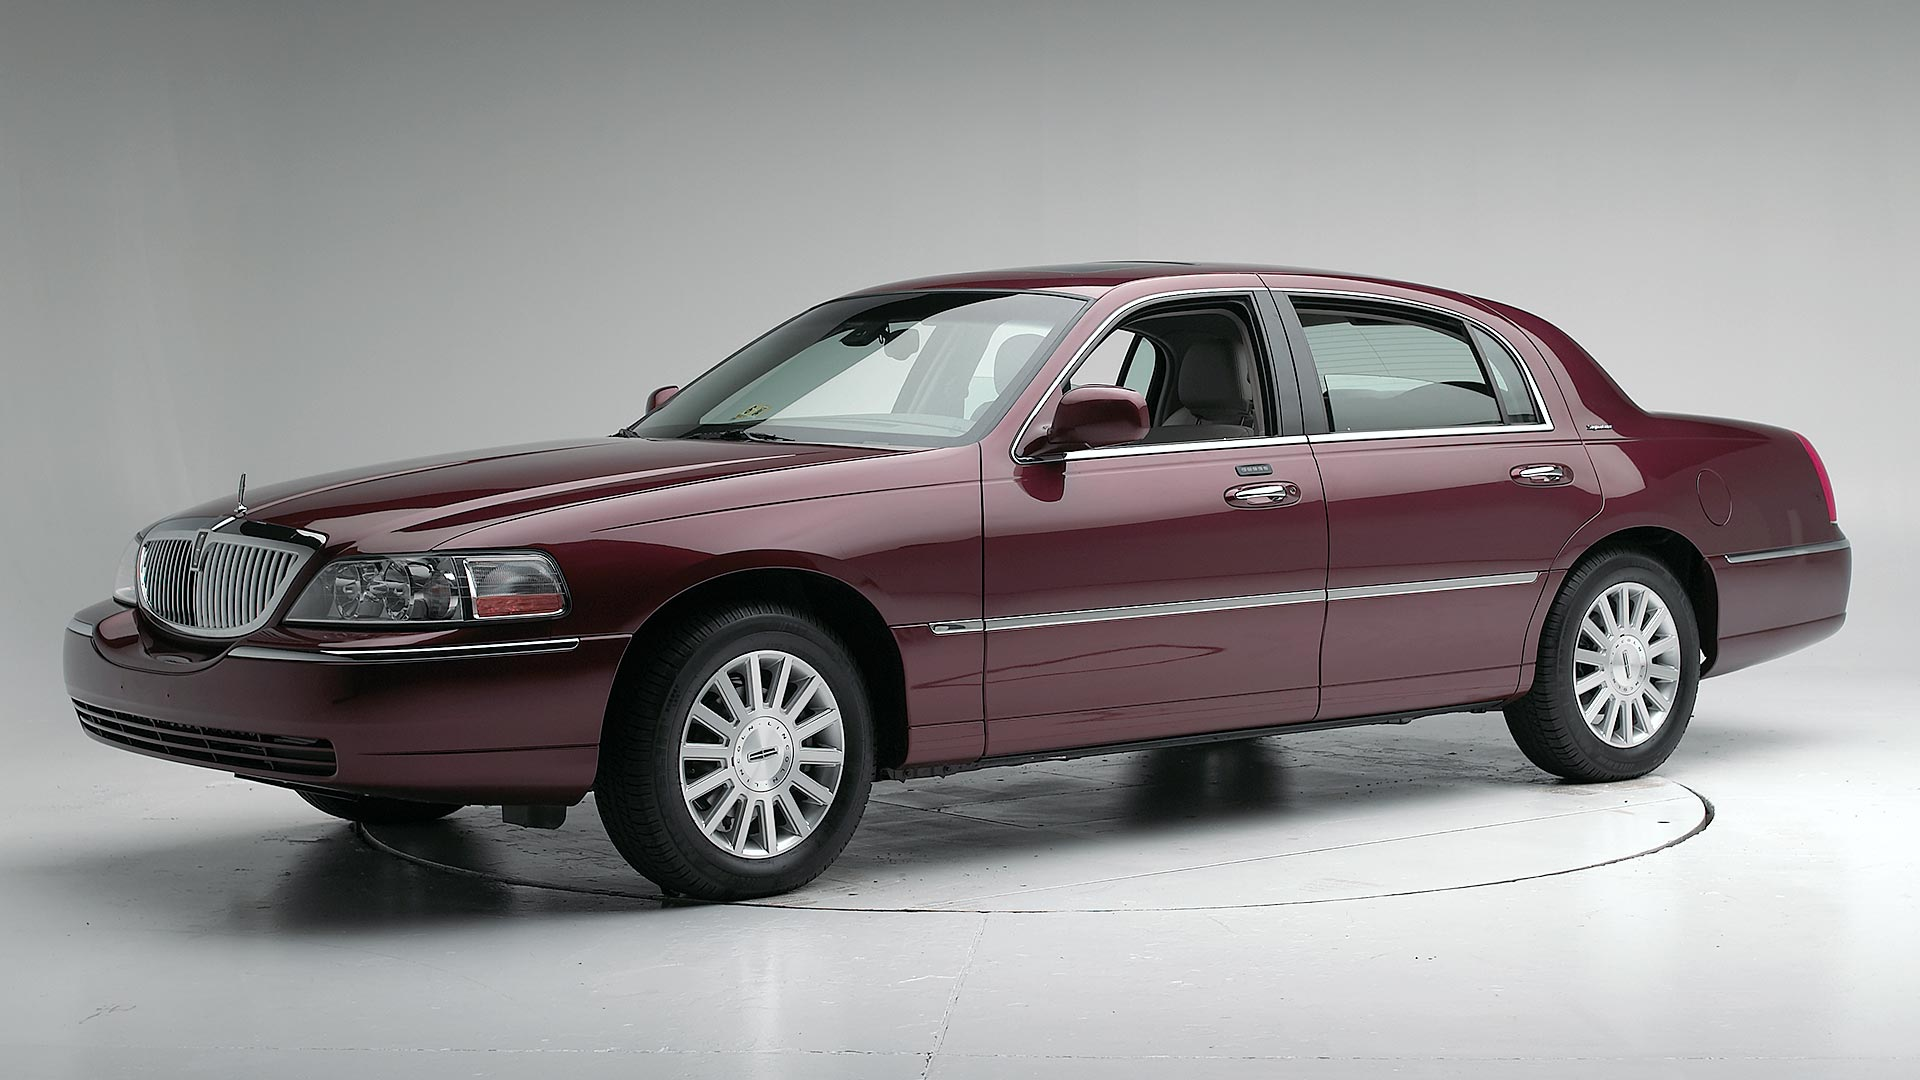 2006 Lincoln Town Car 4-door sedan